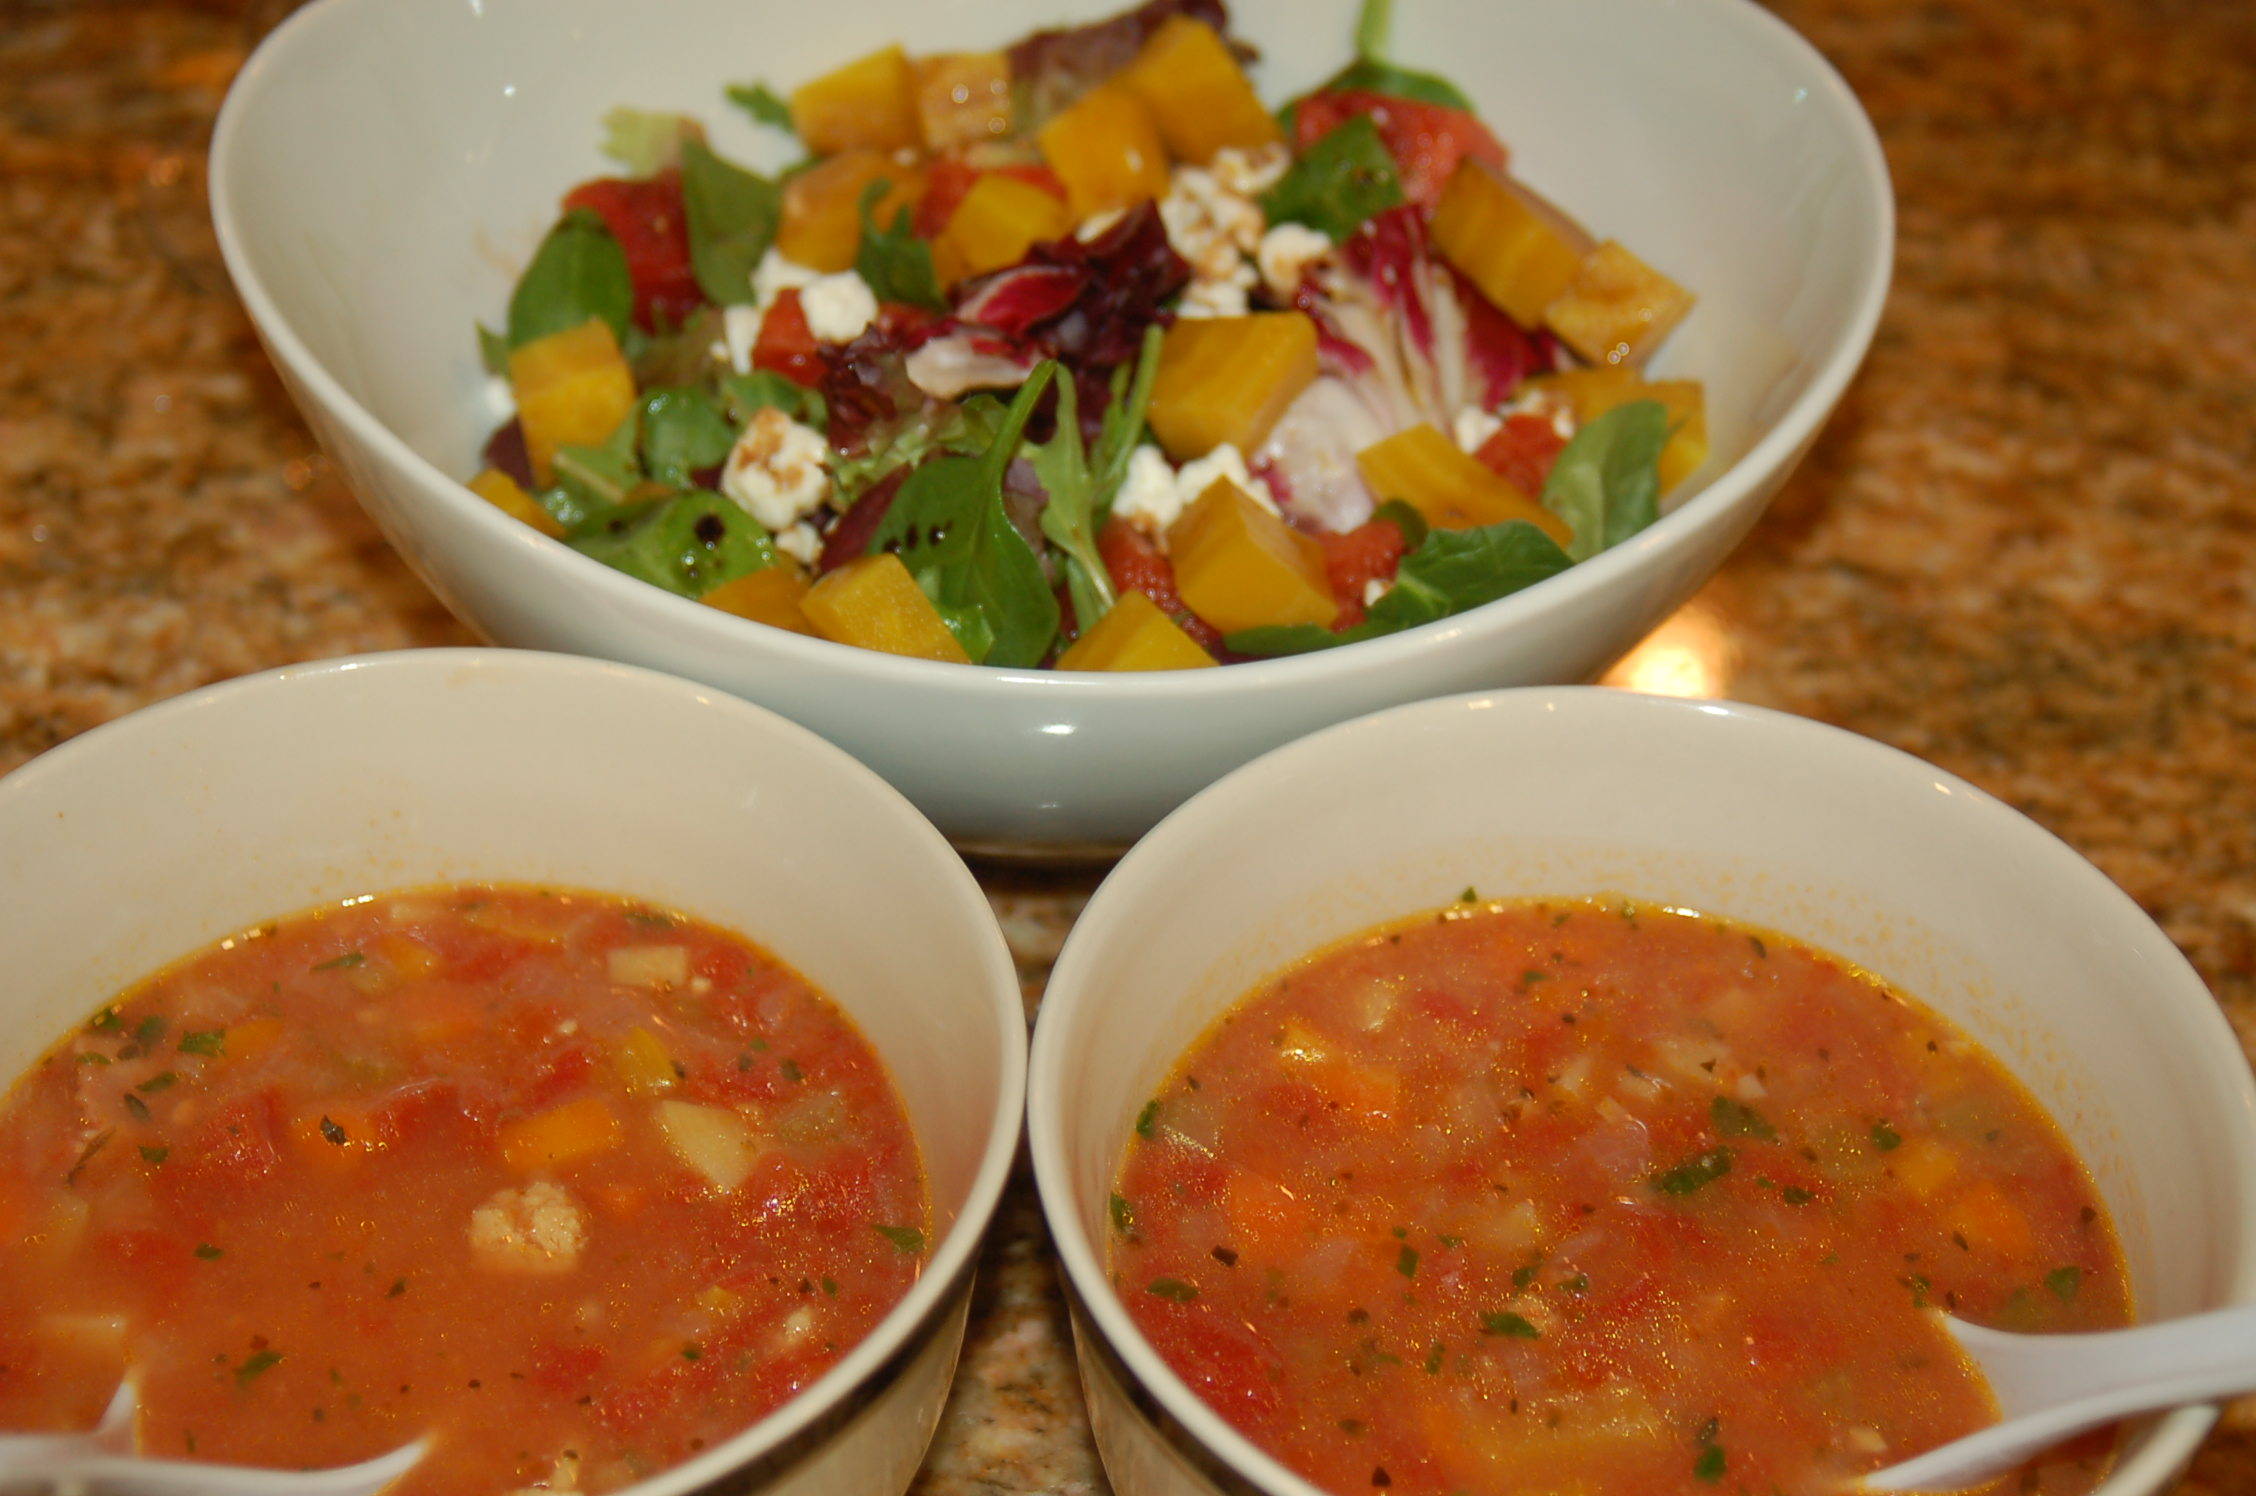 This spicy and hearty Manhattan Clam Chowder pairs nicely with my sweet and refreshing Beet & Watermelon Salad.